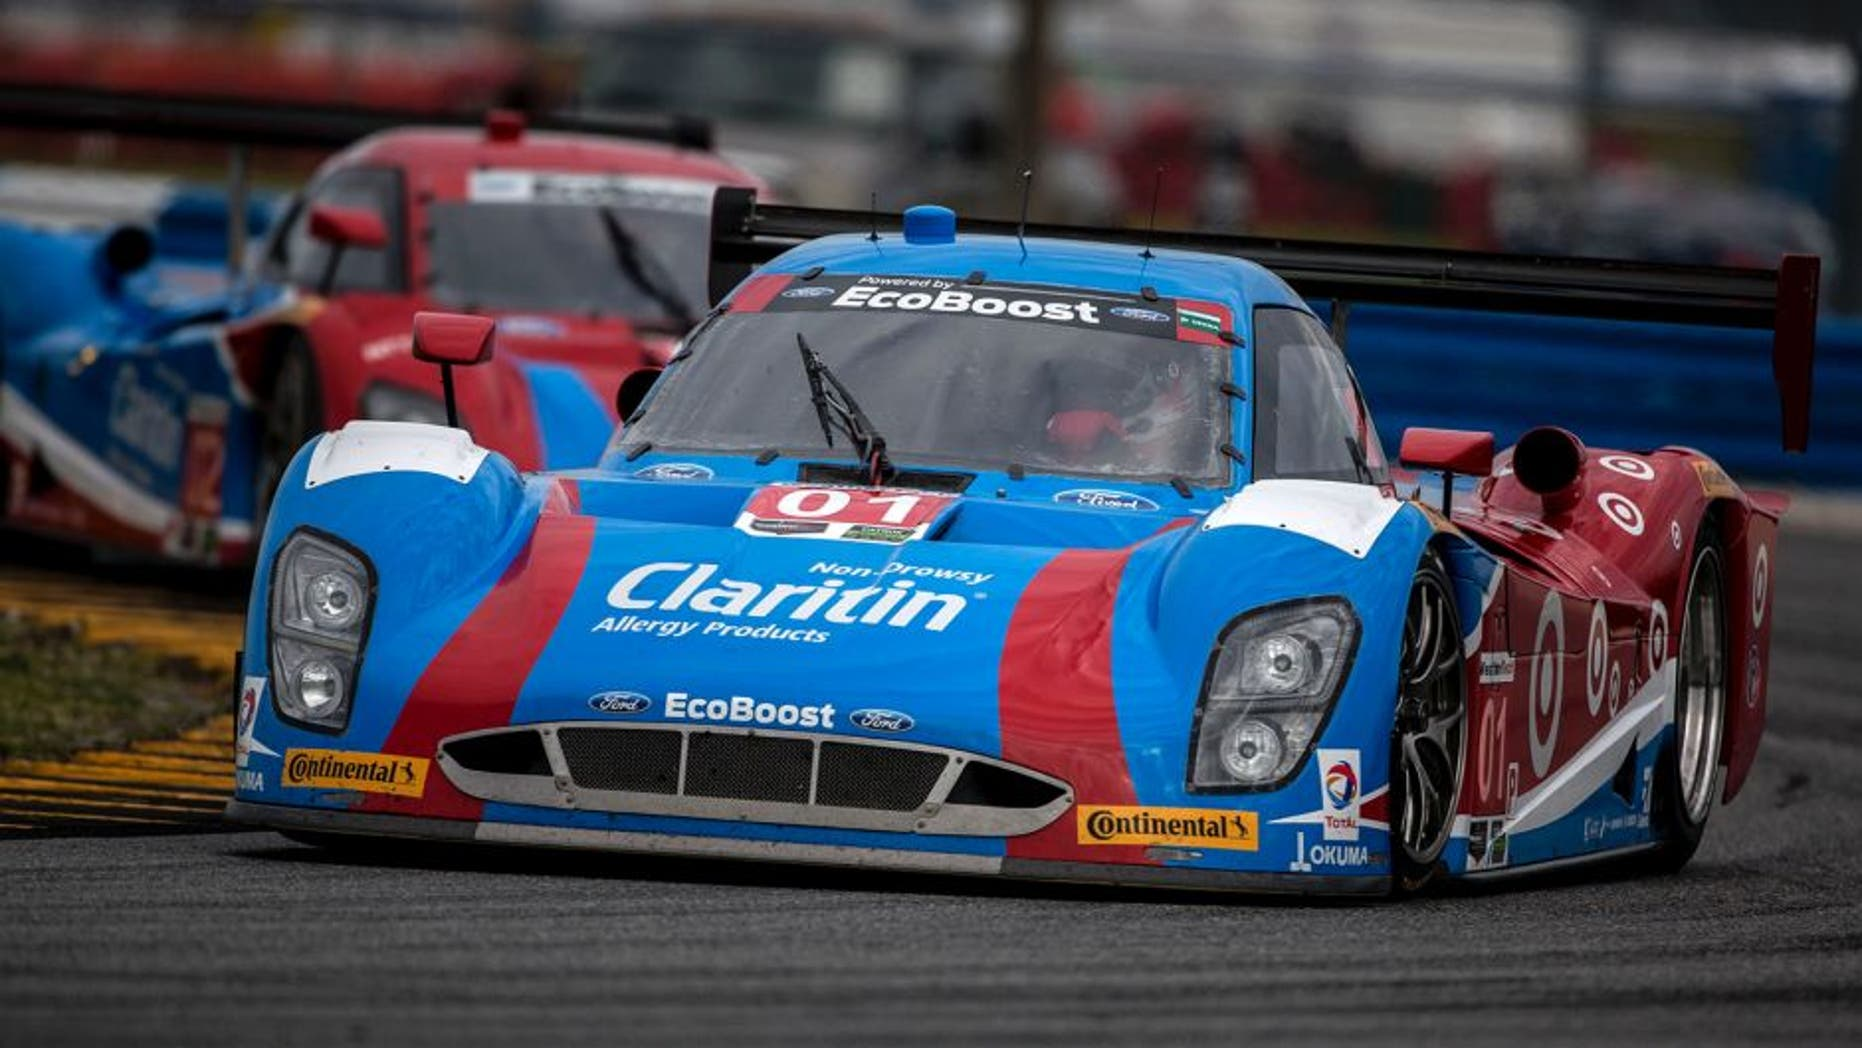 DAYTONA BEACH, FL - JANUARY 10: The #01 Ford Riley of Lance Stroll, Brendan Hartley, Alex Wurz and Andy Priaulx drives on the track during the Roar Before the 24 IMSA WeatherTech Series testing at Daytona International Speedway on January 10, 2016 in Daytona Beach, Florida. (Photo by Brian Cleary/Getty Images)